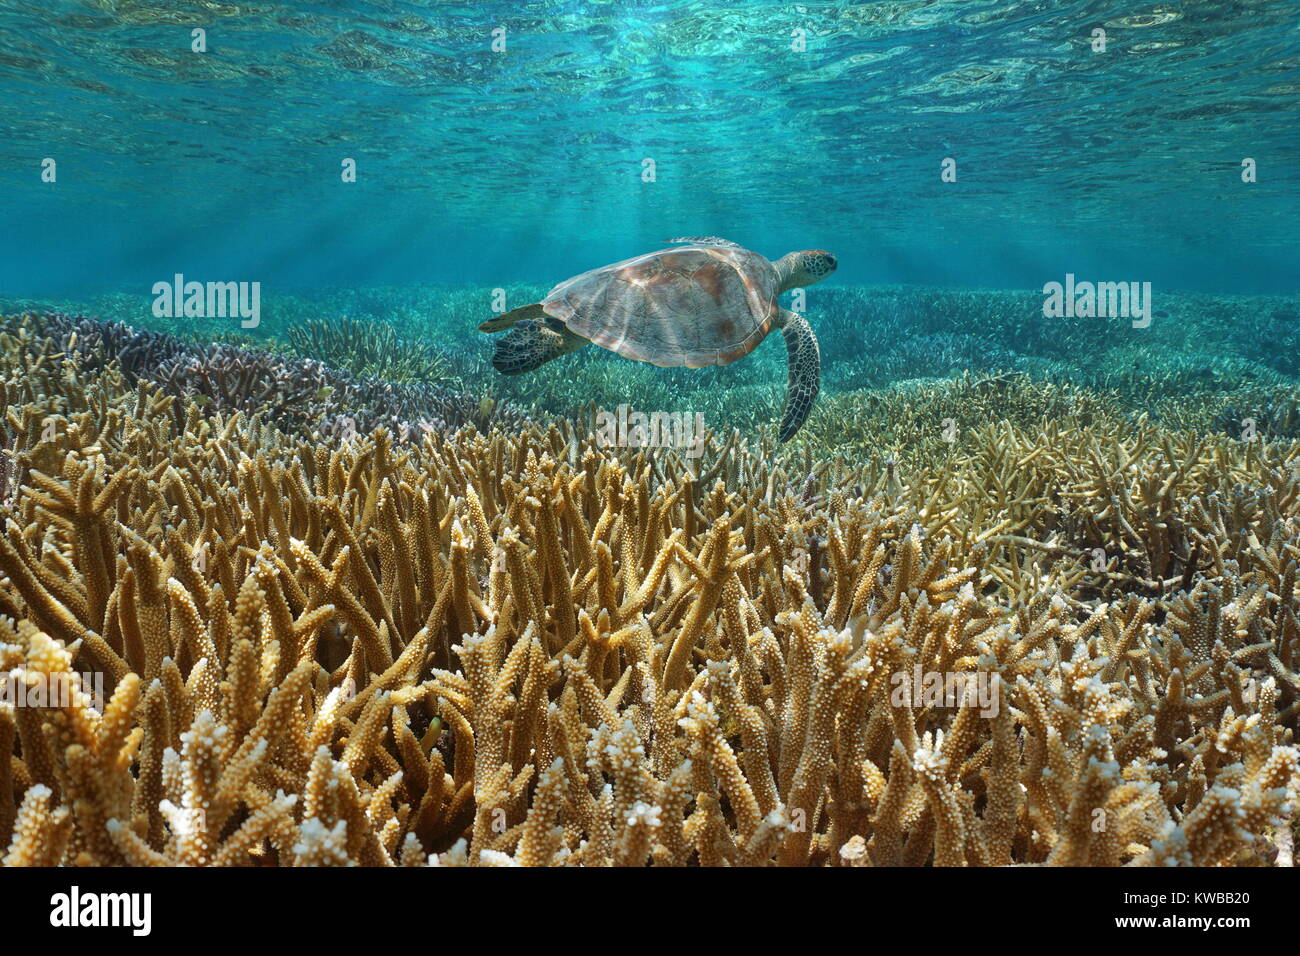 Coral reef underwater with a green sea turtle swims between water surface and corals, Pacific ocean, New Caledonia, - Stock Image